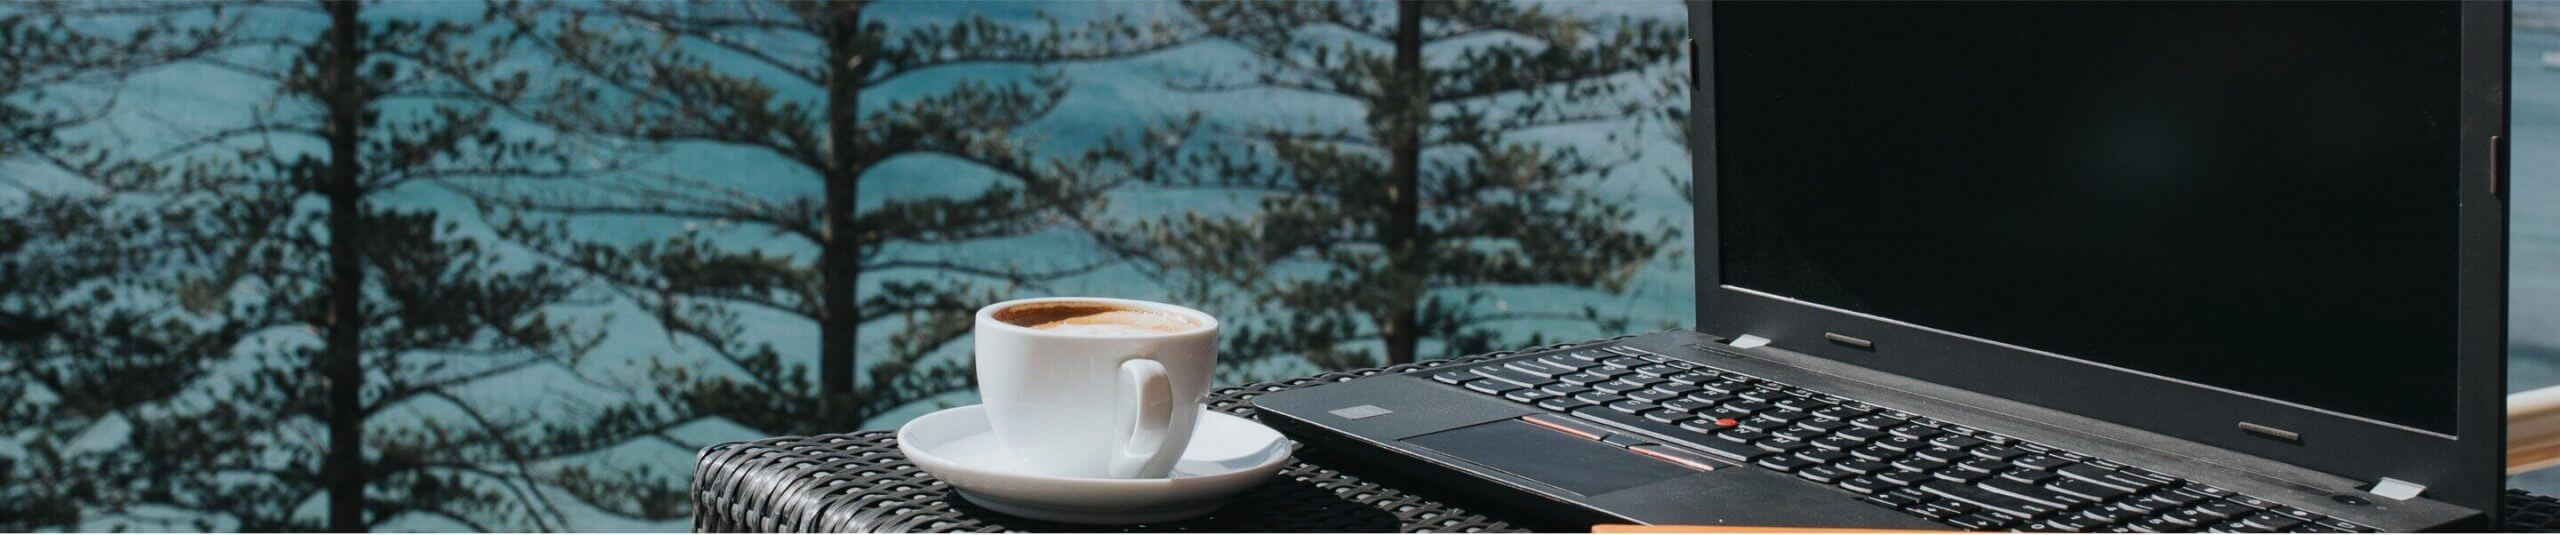 coffee cup by laptop